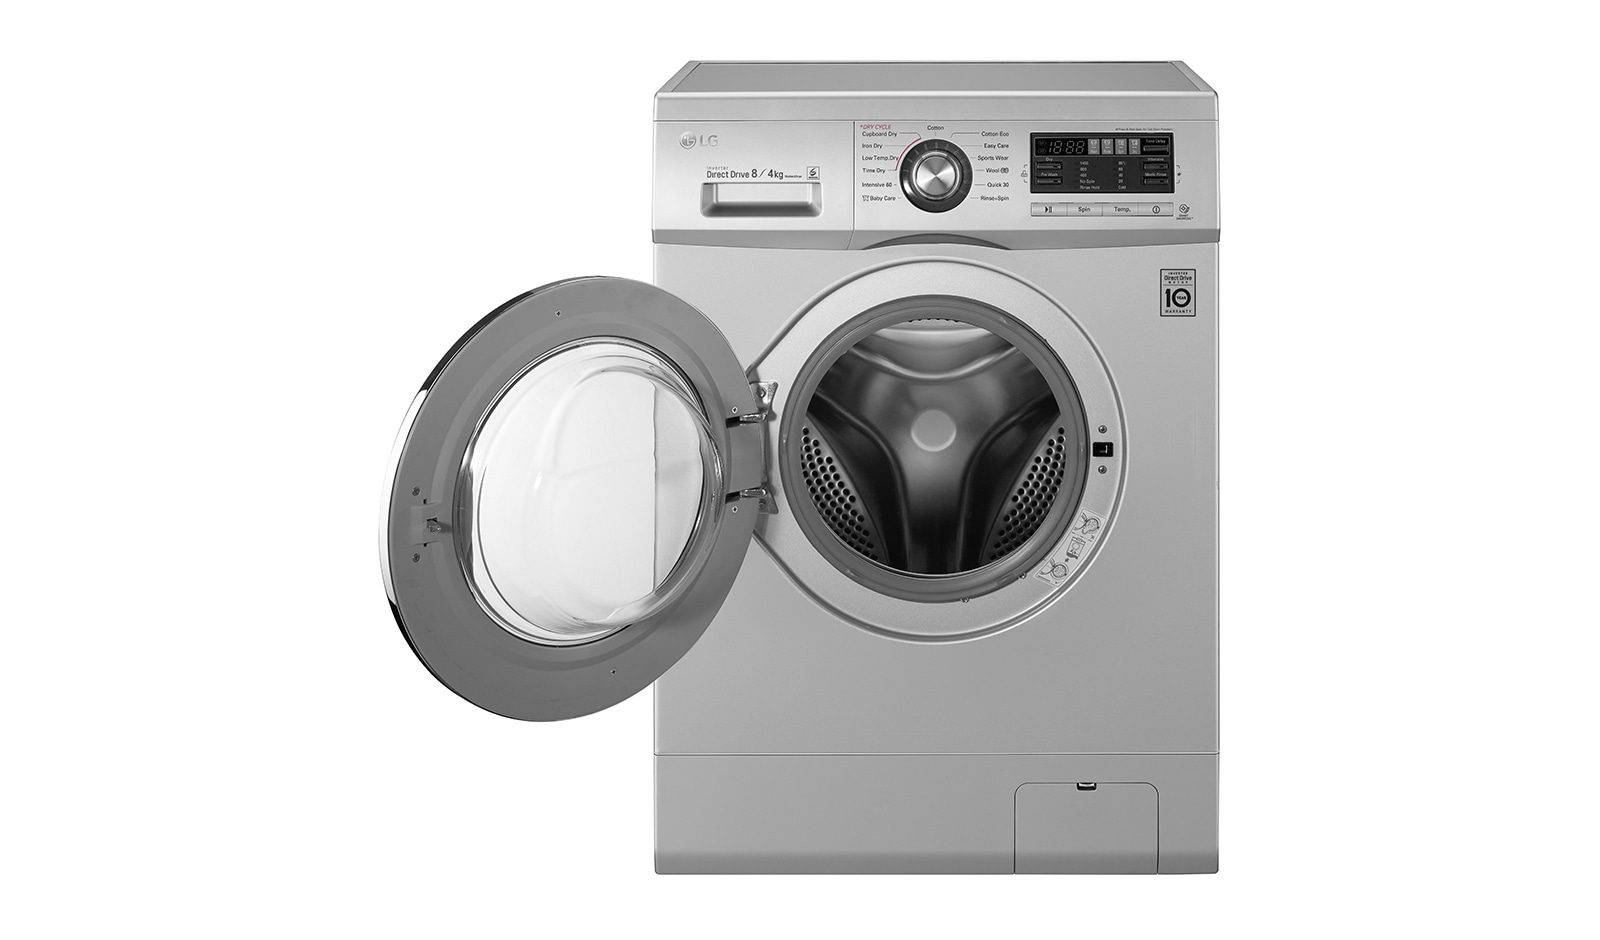 LG F1496AD5 Washing Machines - 8kg/4kg 6 Motion Direct Drive Washer Dryer -  LG Electronics UK